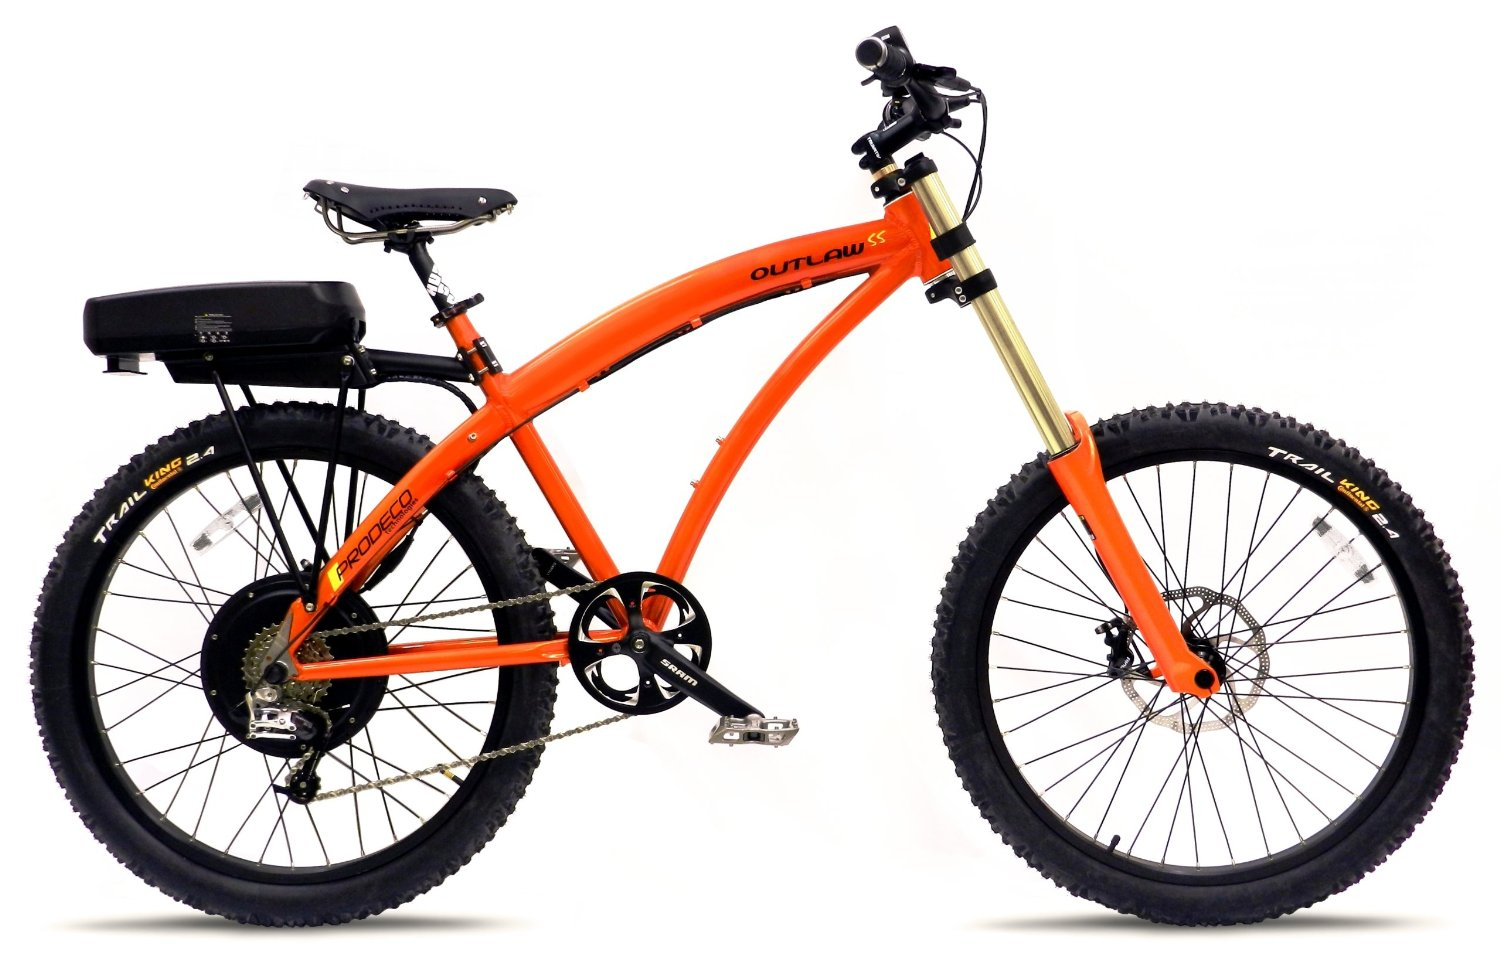 Prodeco V3 Outlaw Bicycle